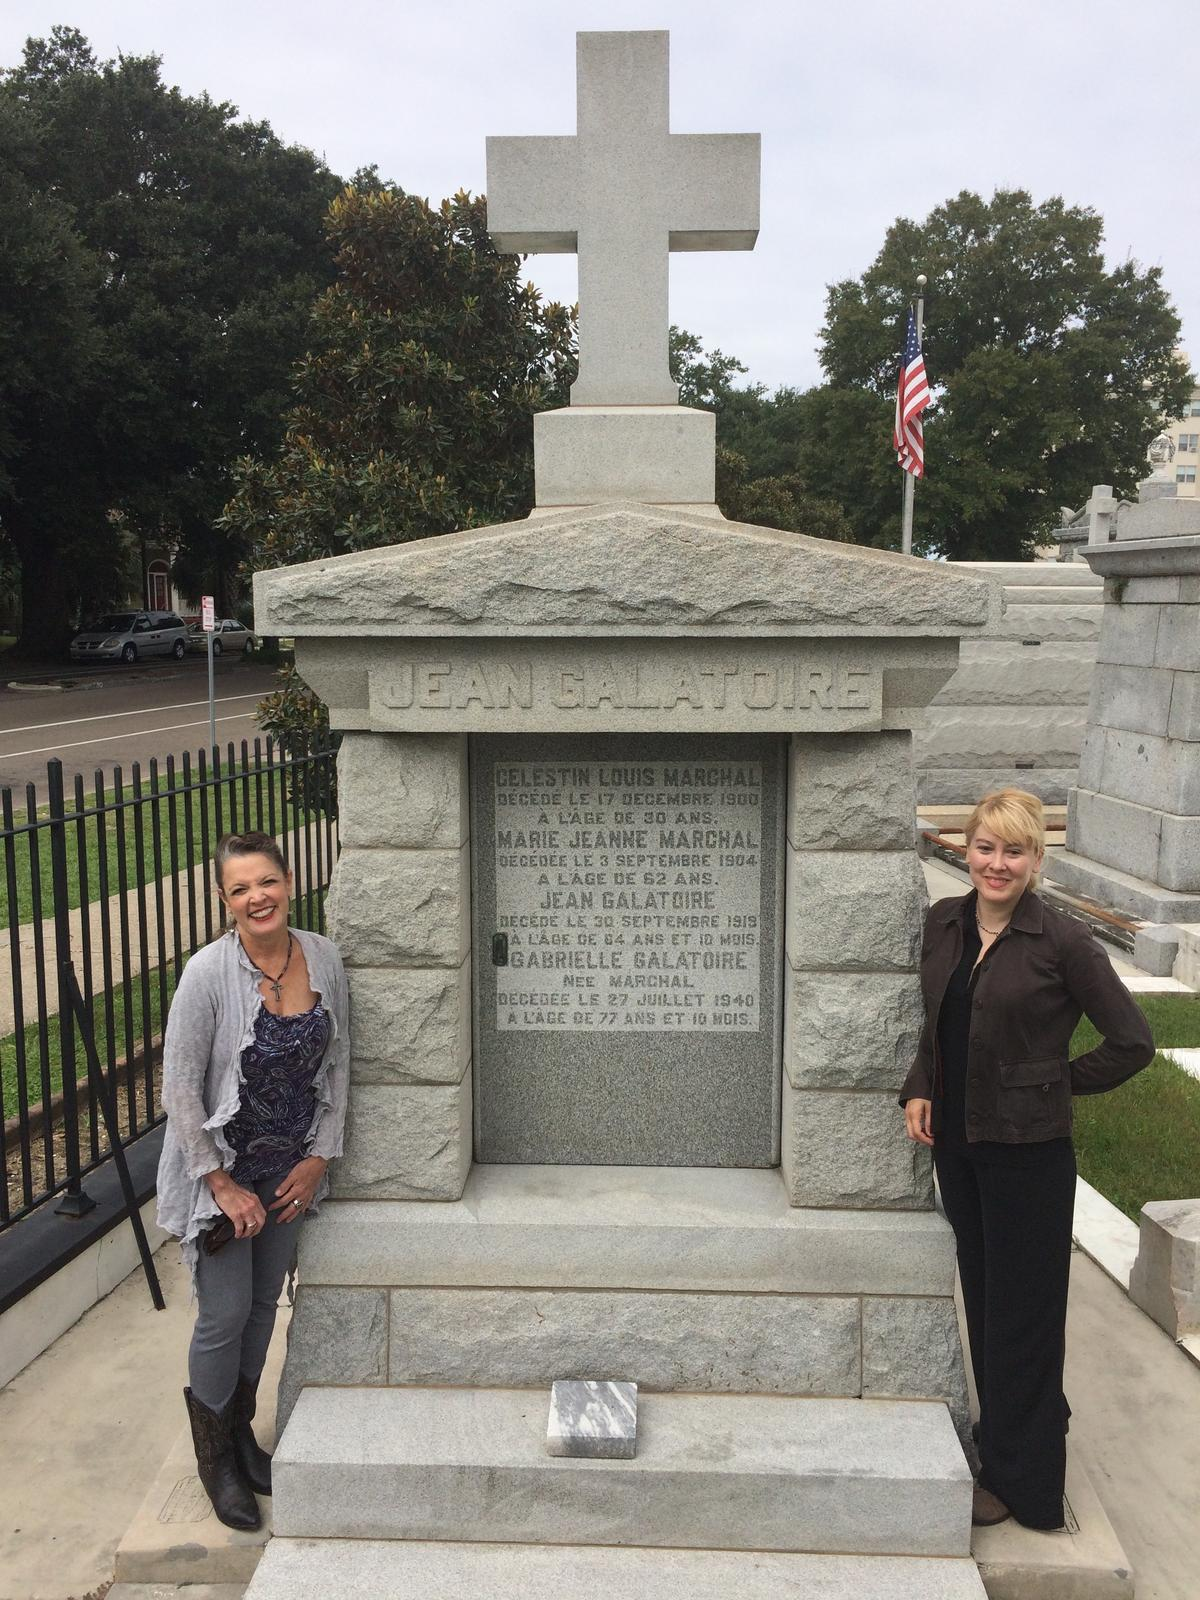 Poppy Tooker and Sally Asher at the grave of Jean Galatoire in St. Louis Cemetery No. 3.   CREDIT JOE SHRINER